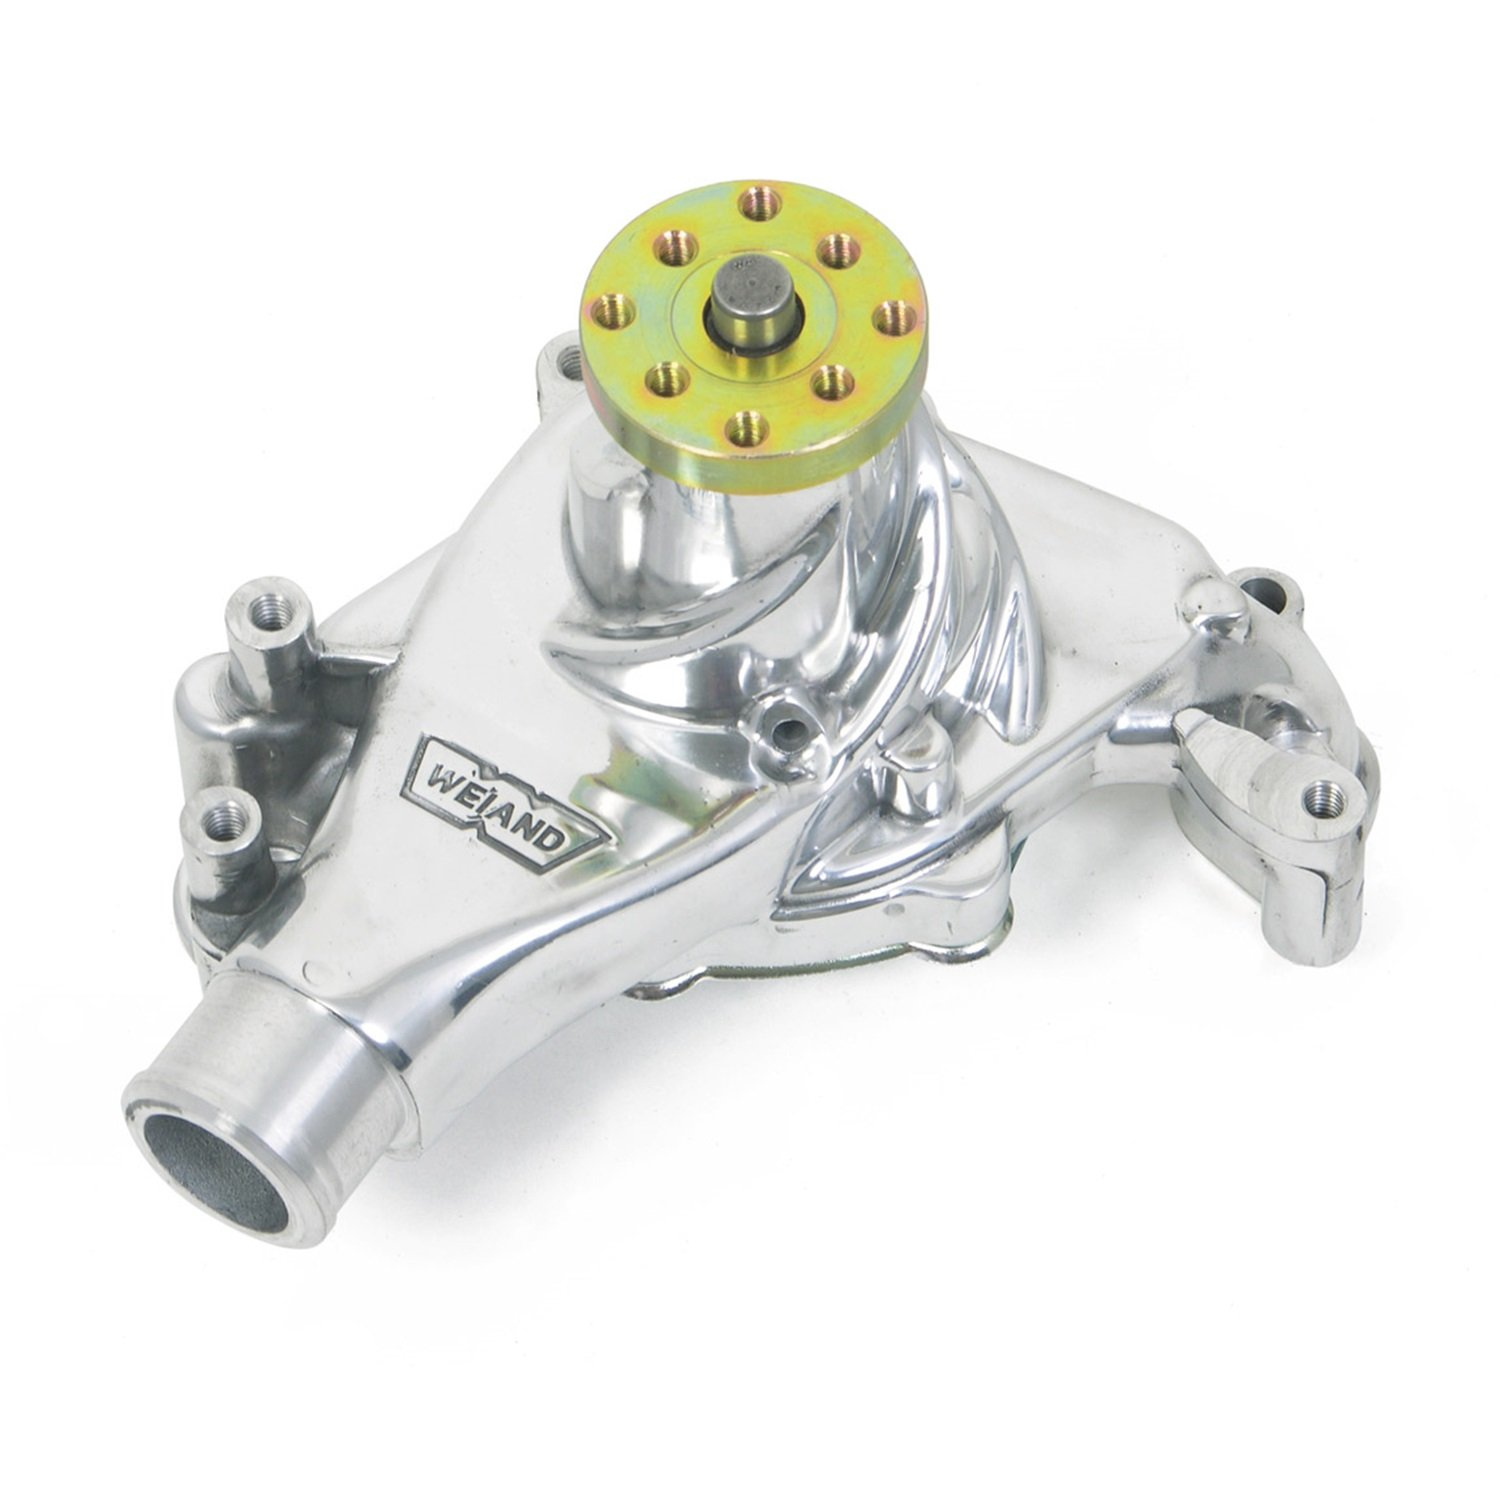 Weiand 9240P Action +Plus Water Pump by Weiand (Image #1)